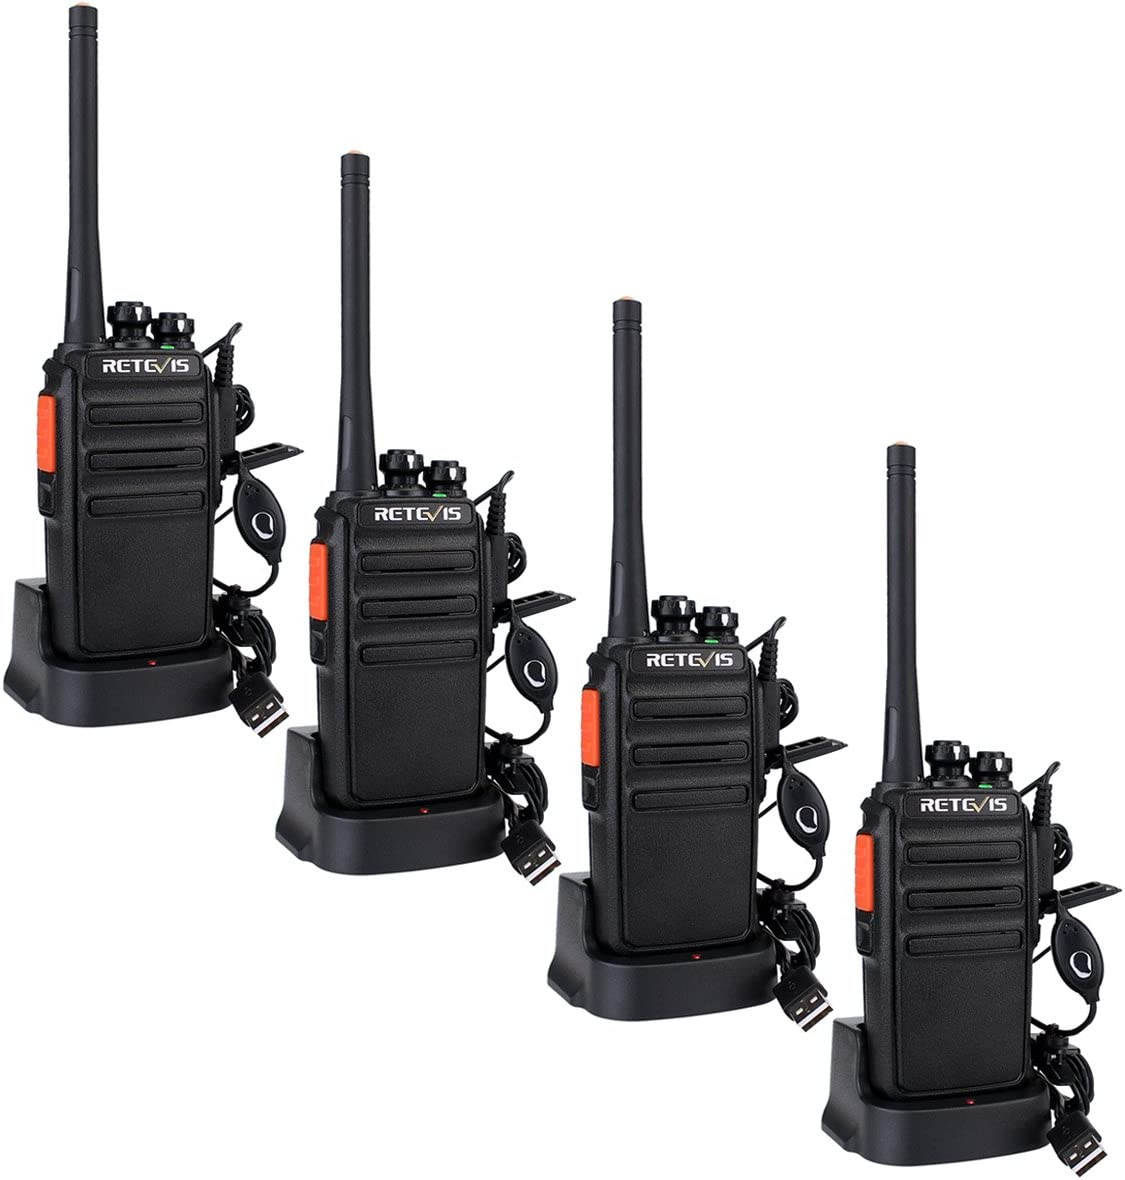 Retevis RT24 Walkie Talkie Recargable